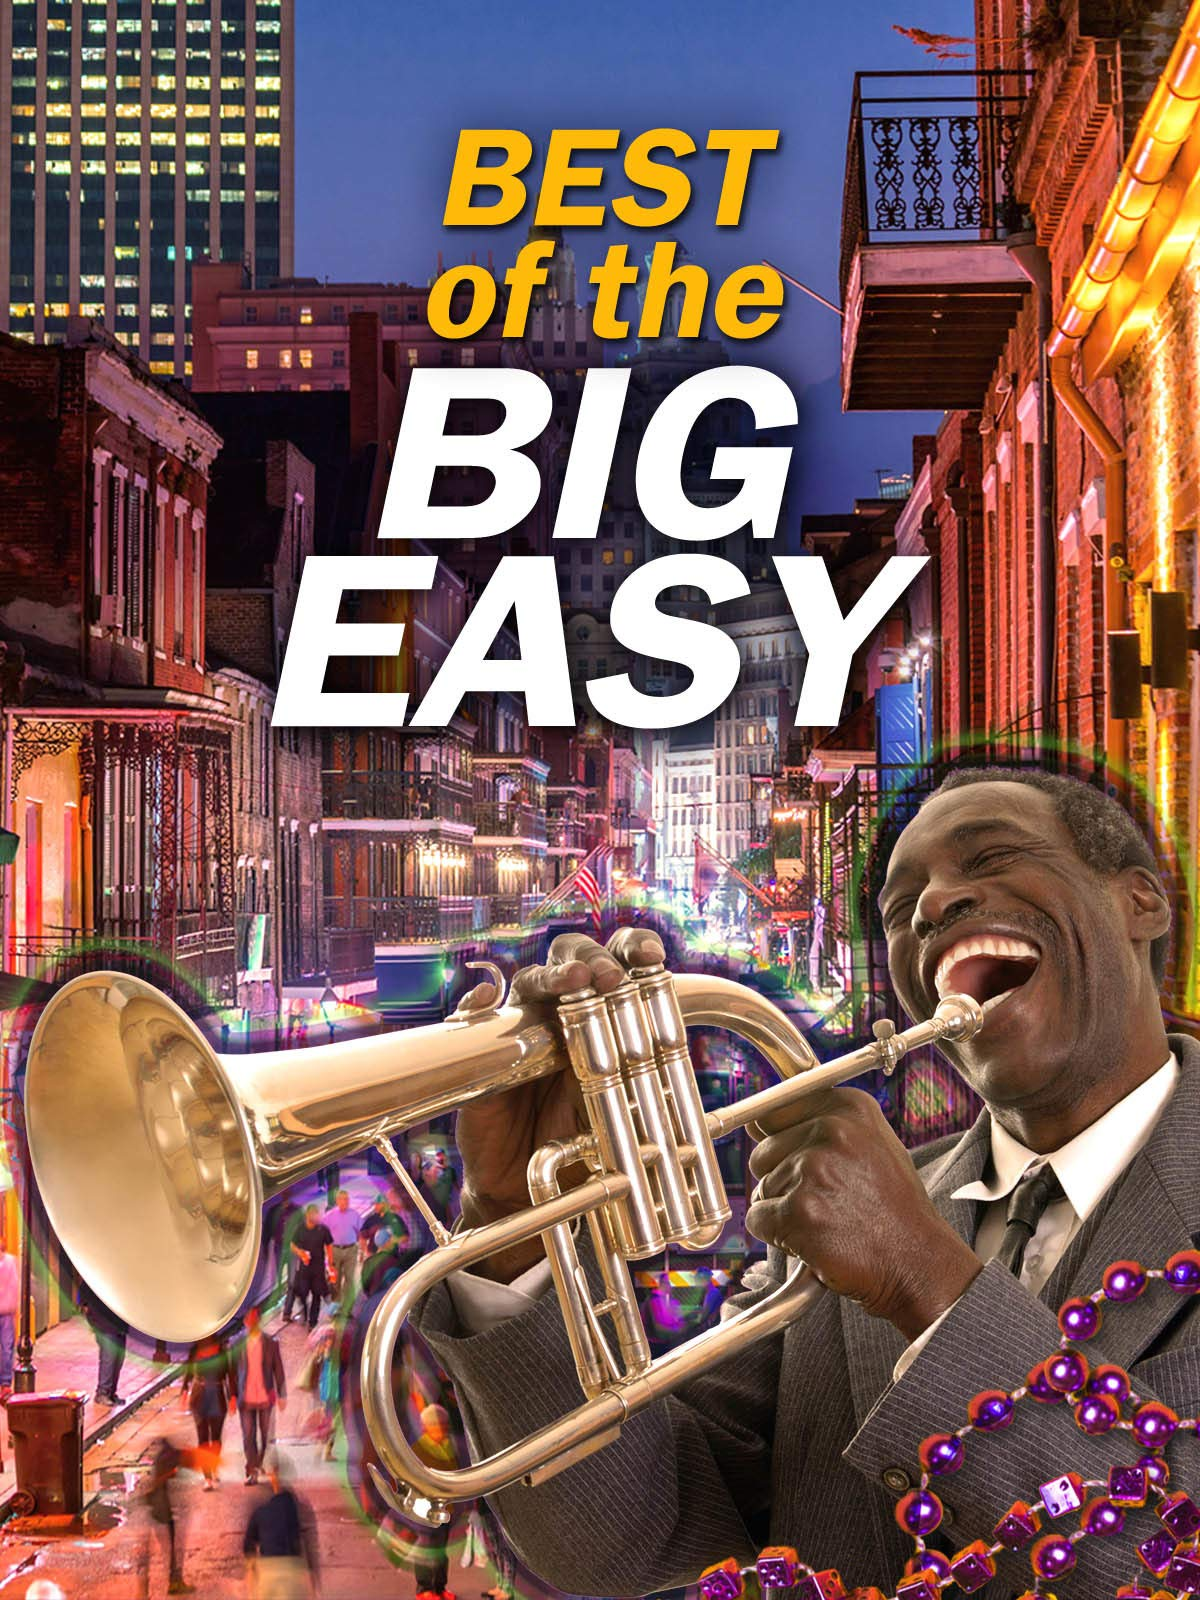 Best of the Big Easy